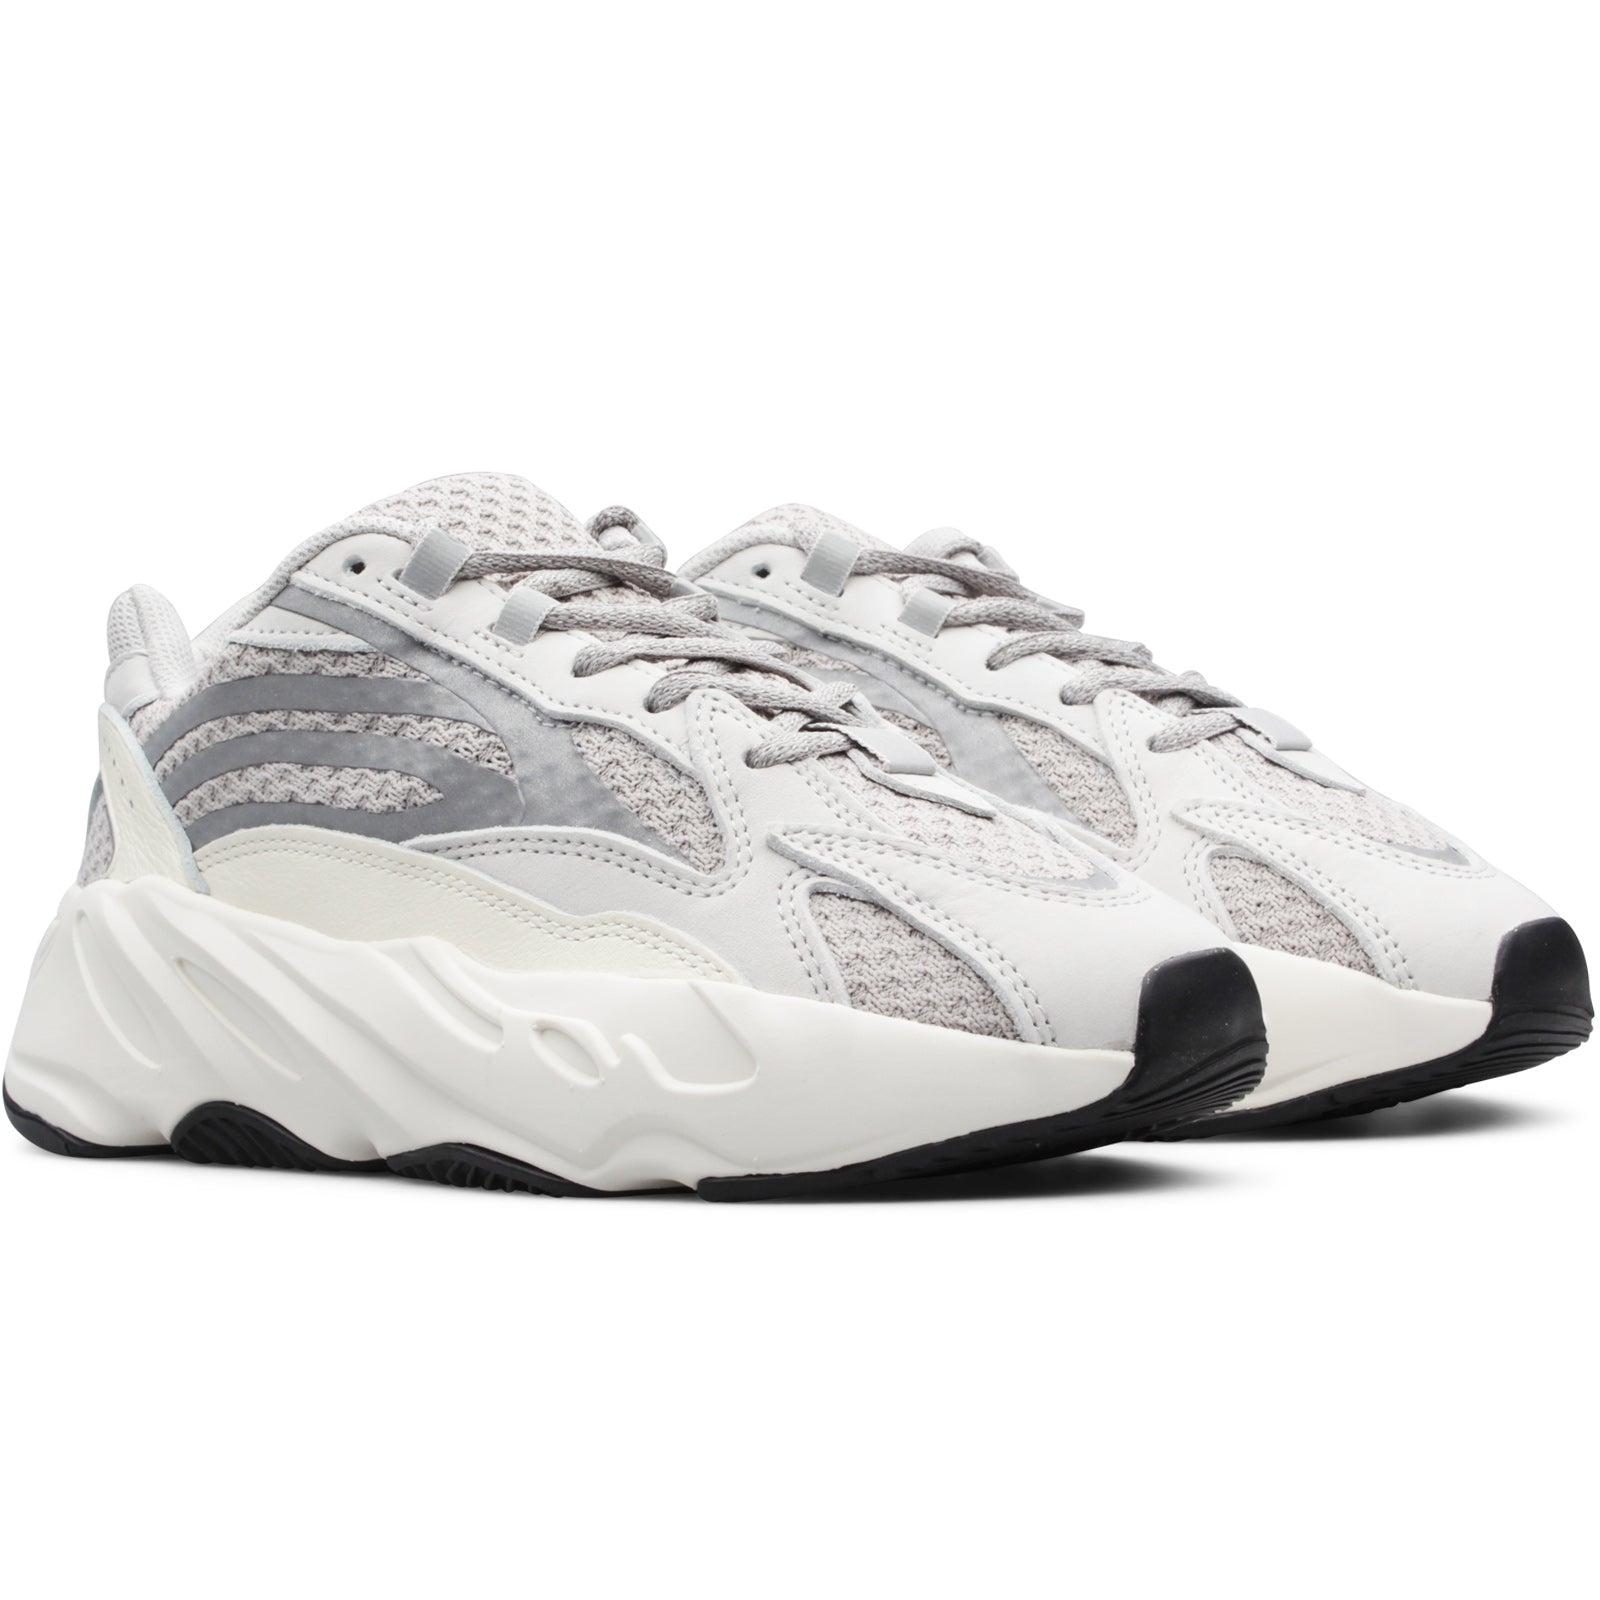 3c39c45f341 The full-length drop in boost midsole provides comfort and stability. Adidas  Yeezy Boost 700 V2